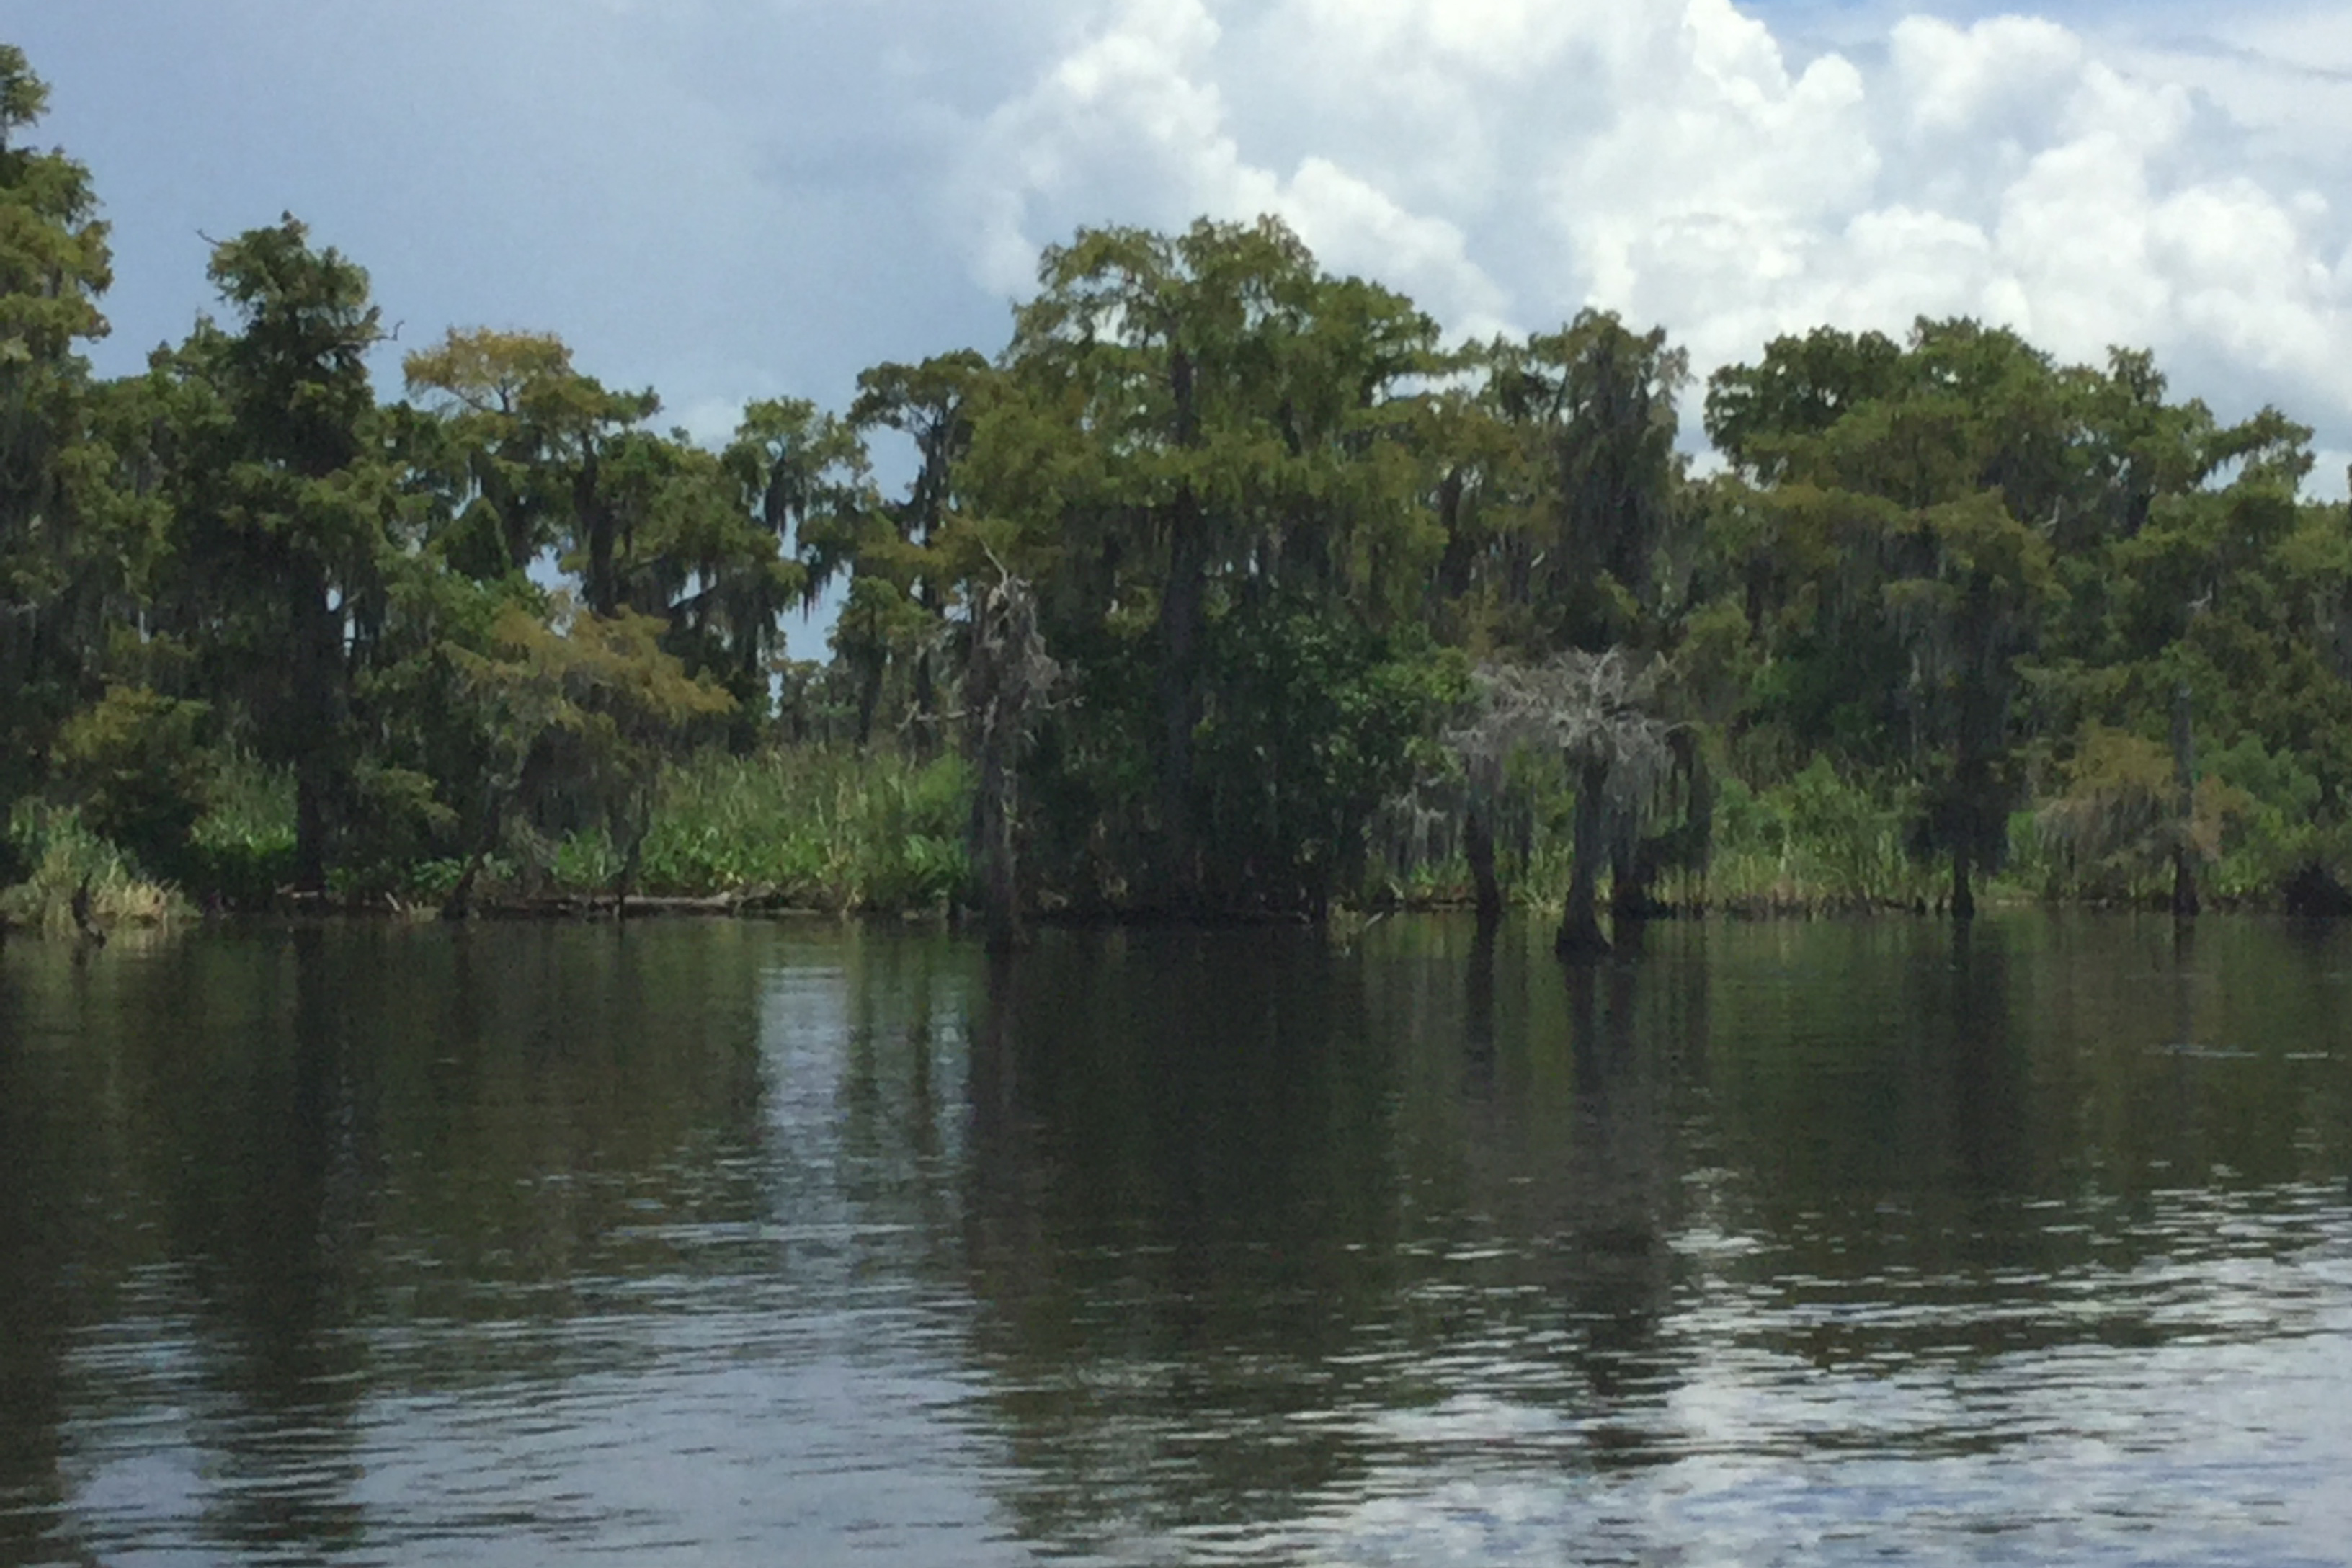 A shore in Louisiana's Lake Salvador with trees on the bank.